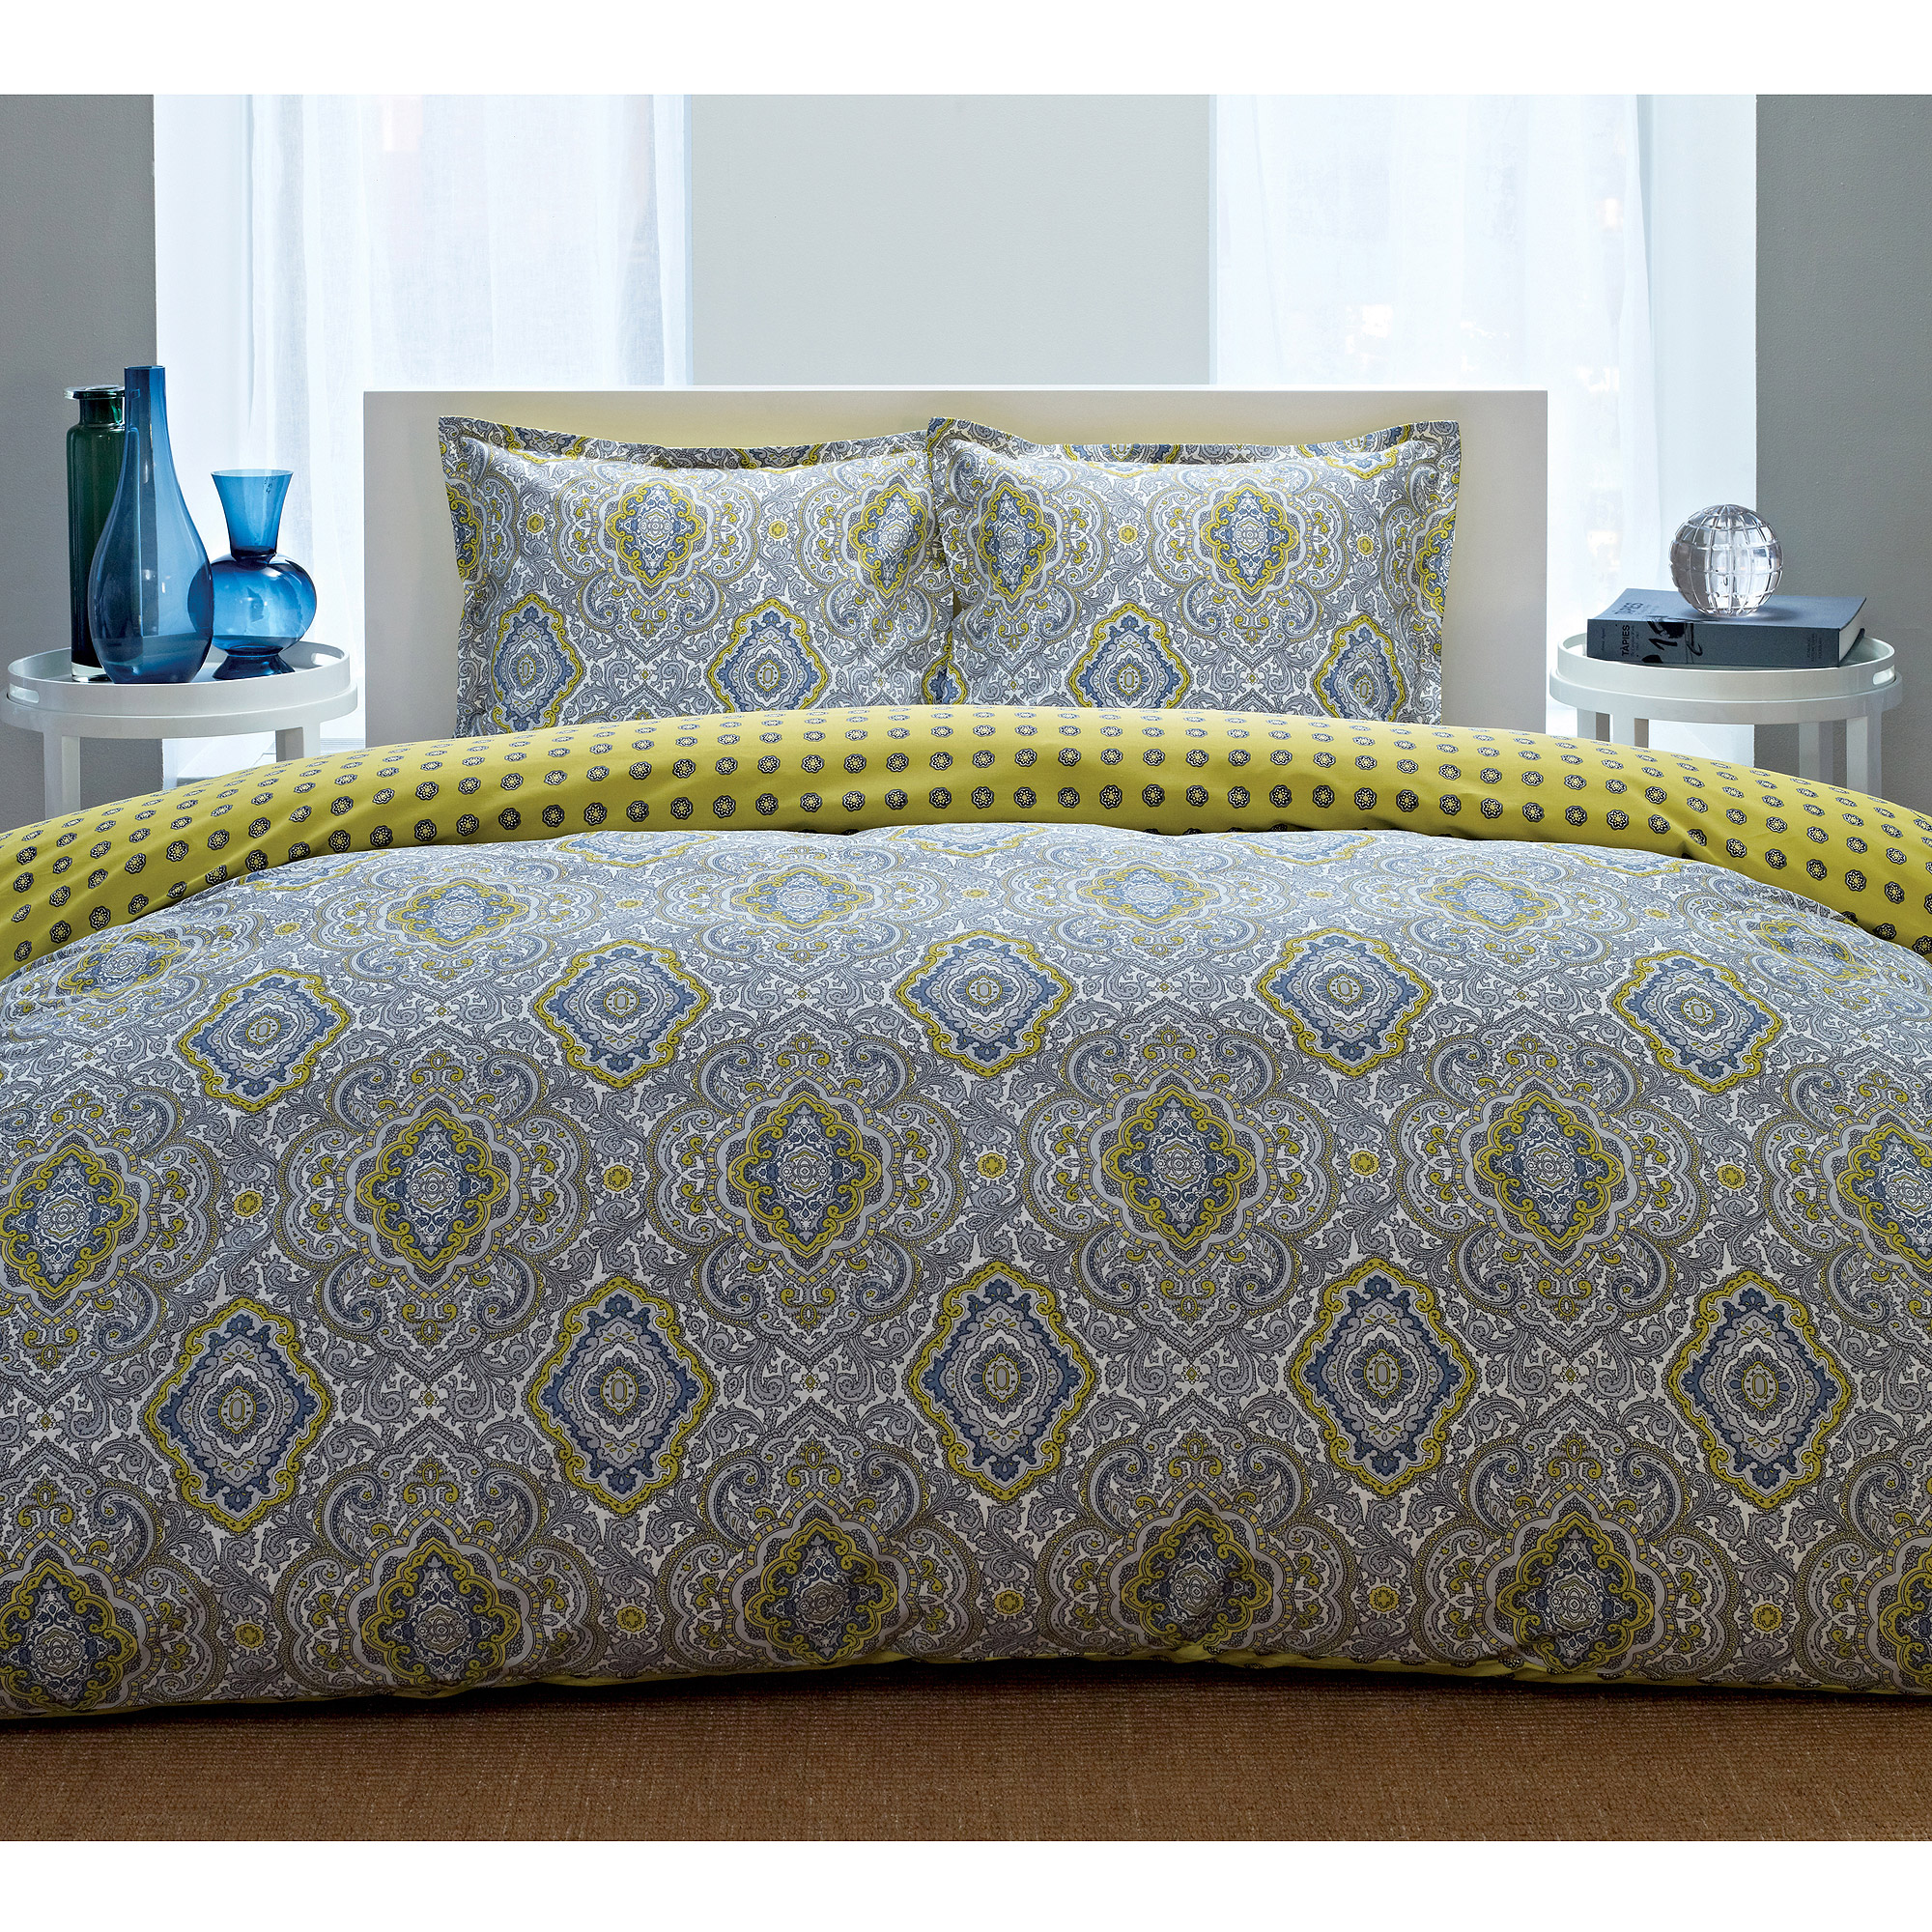 City Scene Milan Bedding Comforter Set